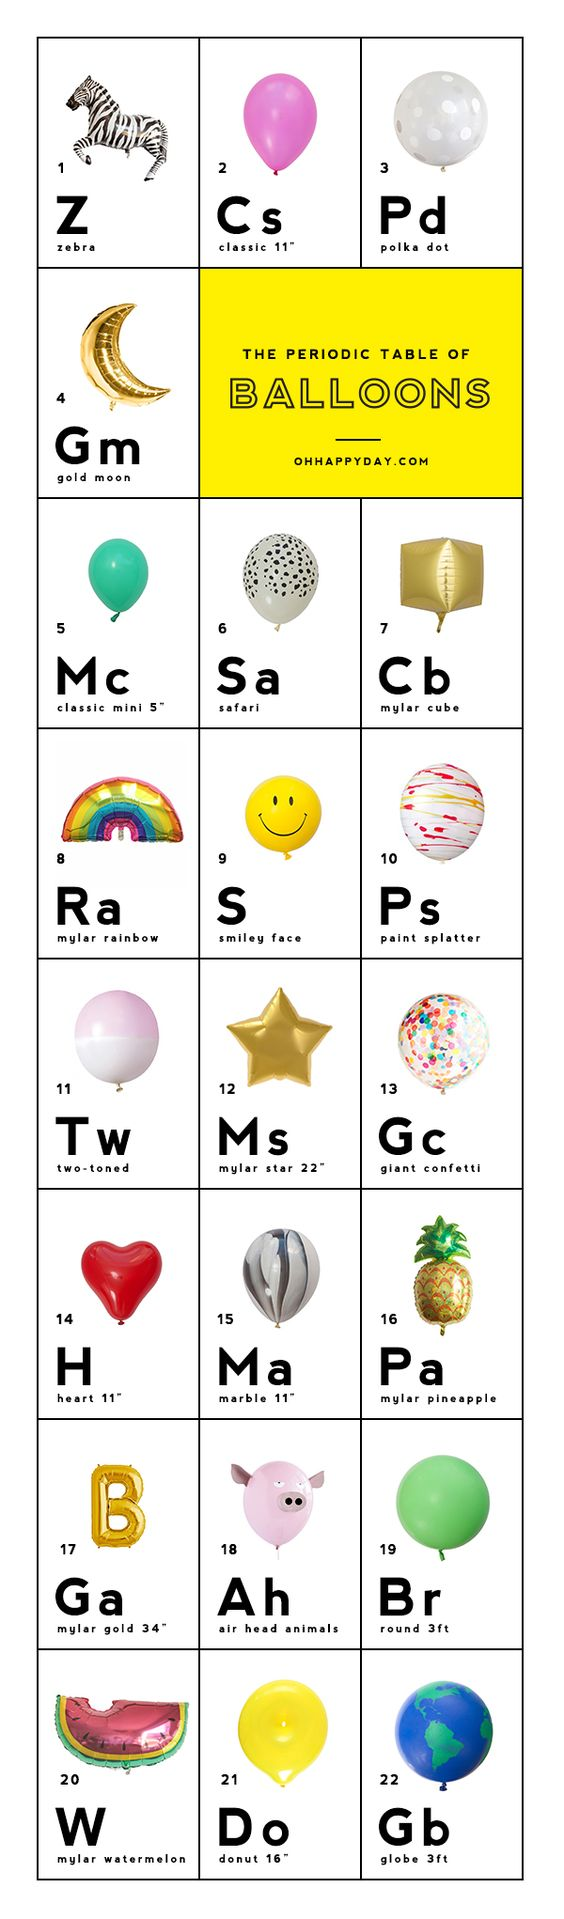 Where is antimony on the periodic table gallery periodic table best 25 neon periodic table ideas on pinterest periodic table best 25 neon periodic table ideas gamestrikefo Image collections